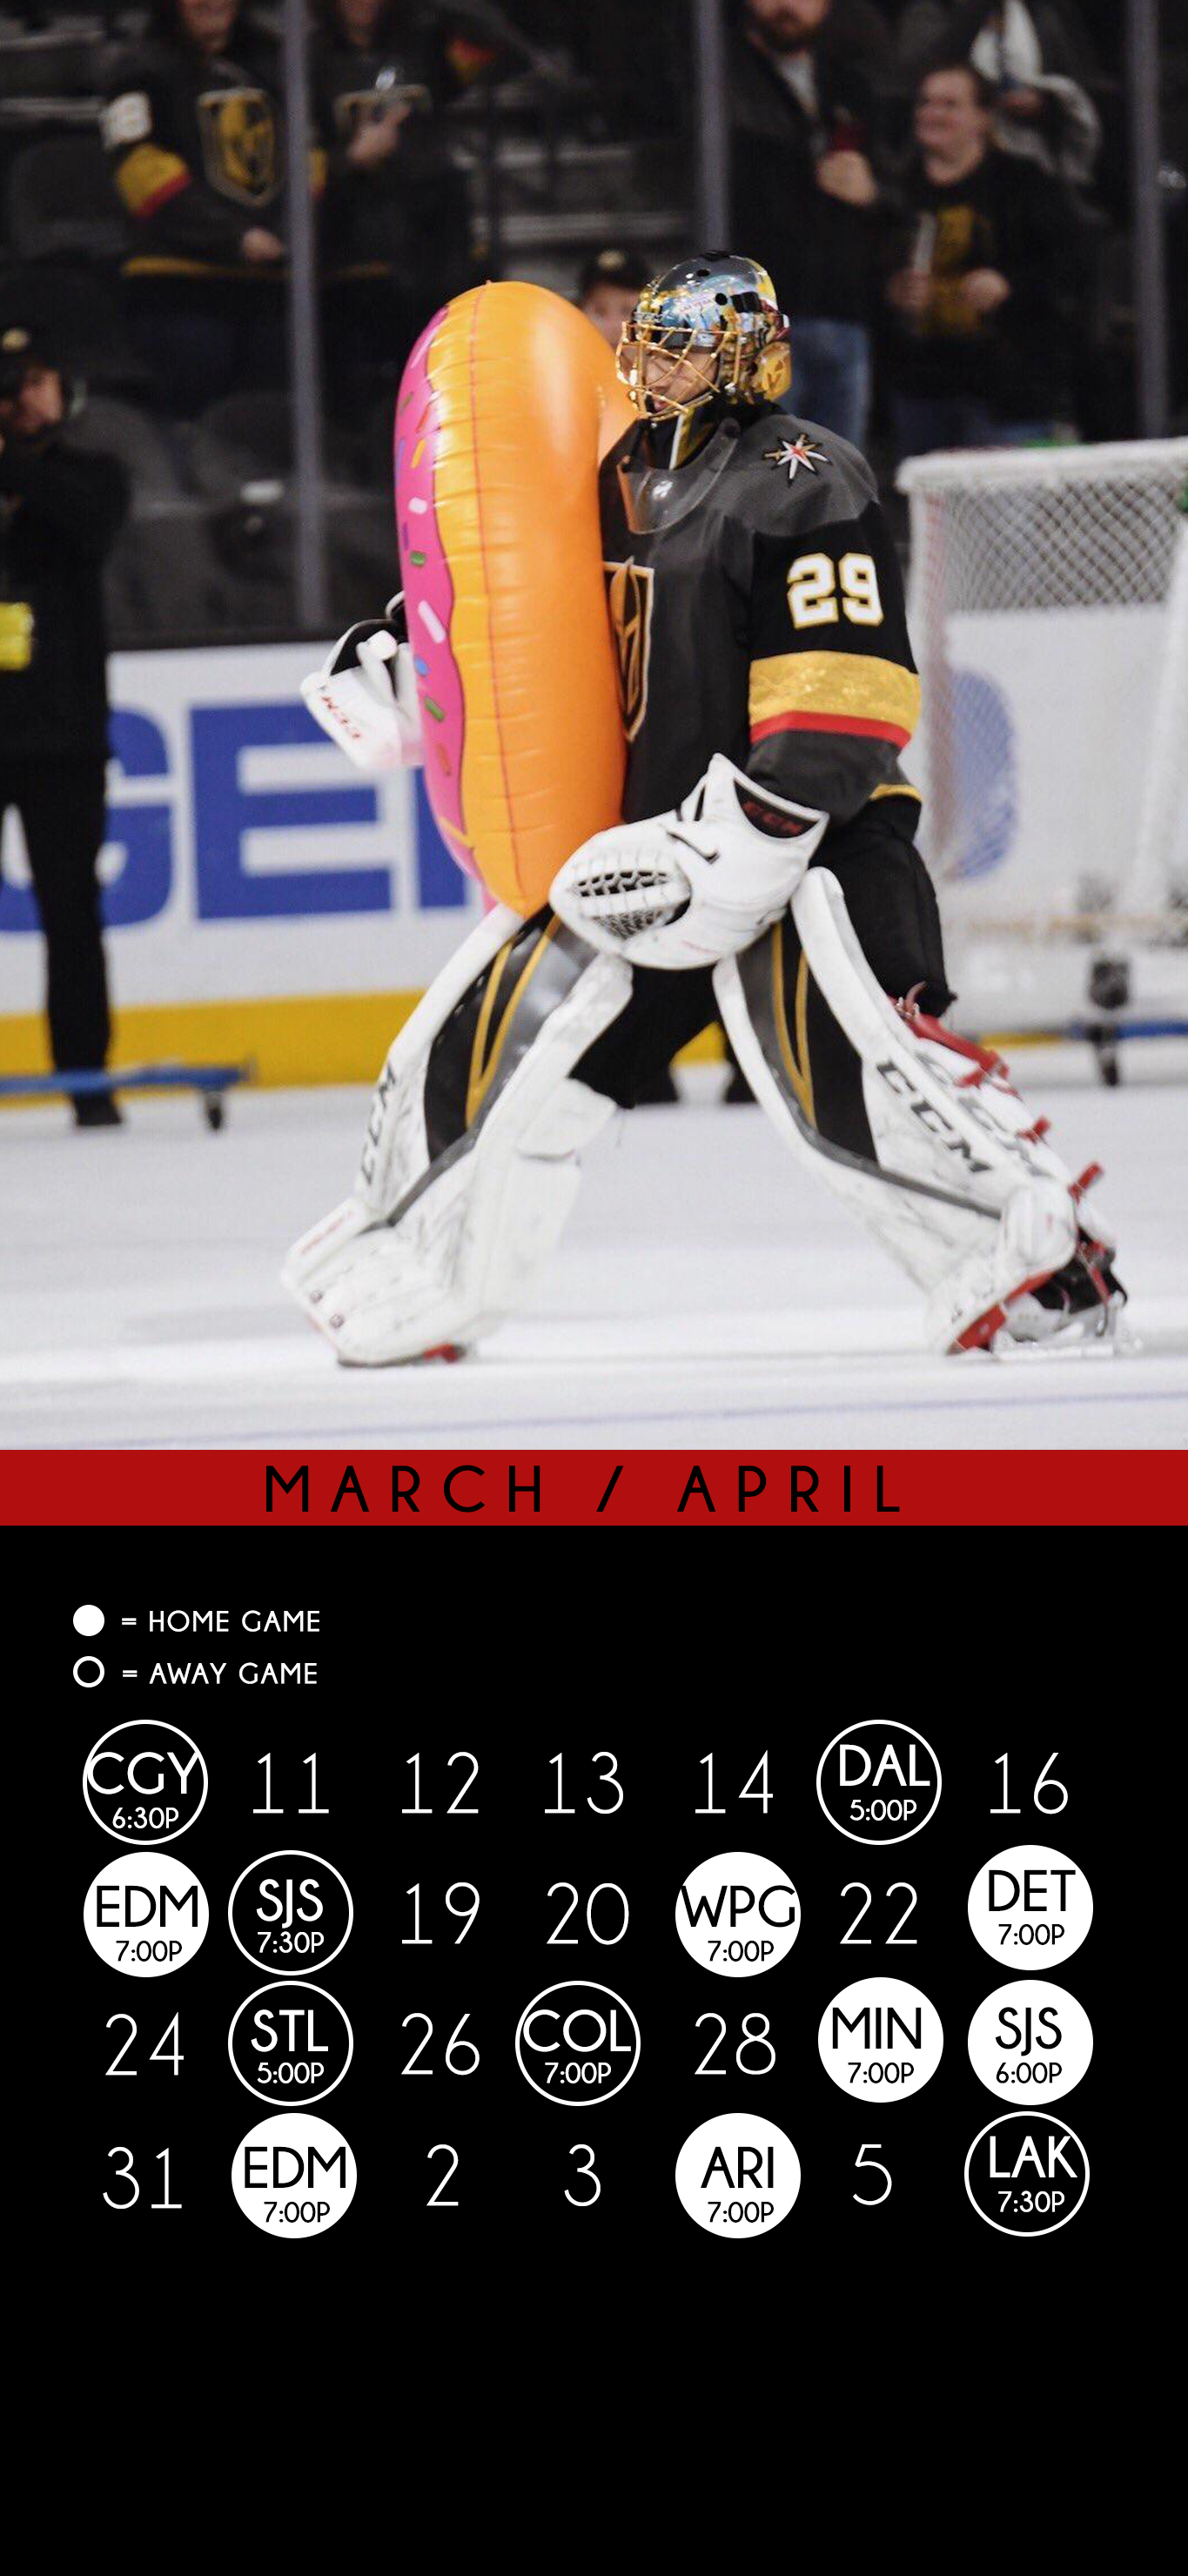 MarchApril Schedule Wallpaper Fleury and Stone options 1365x2960